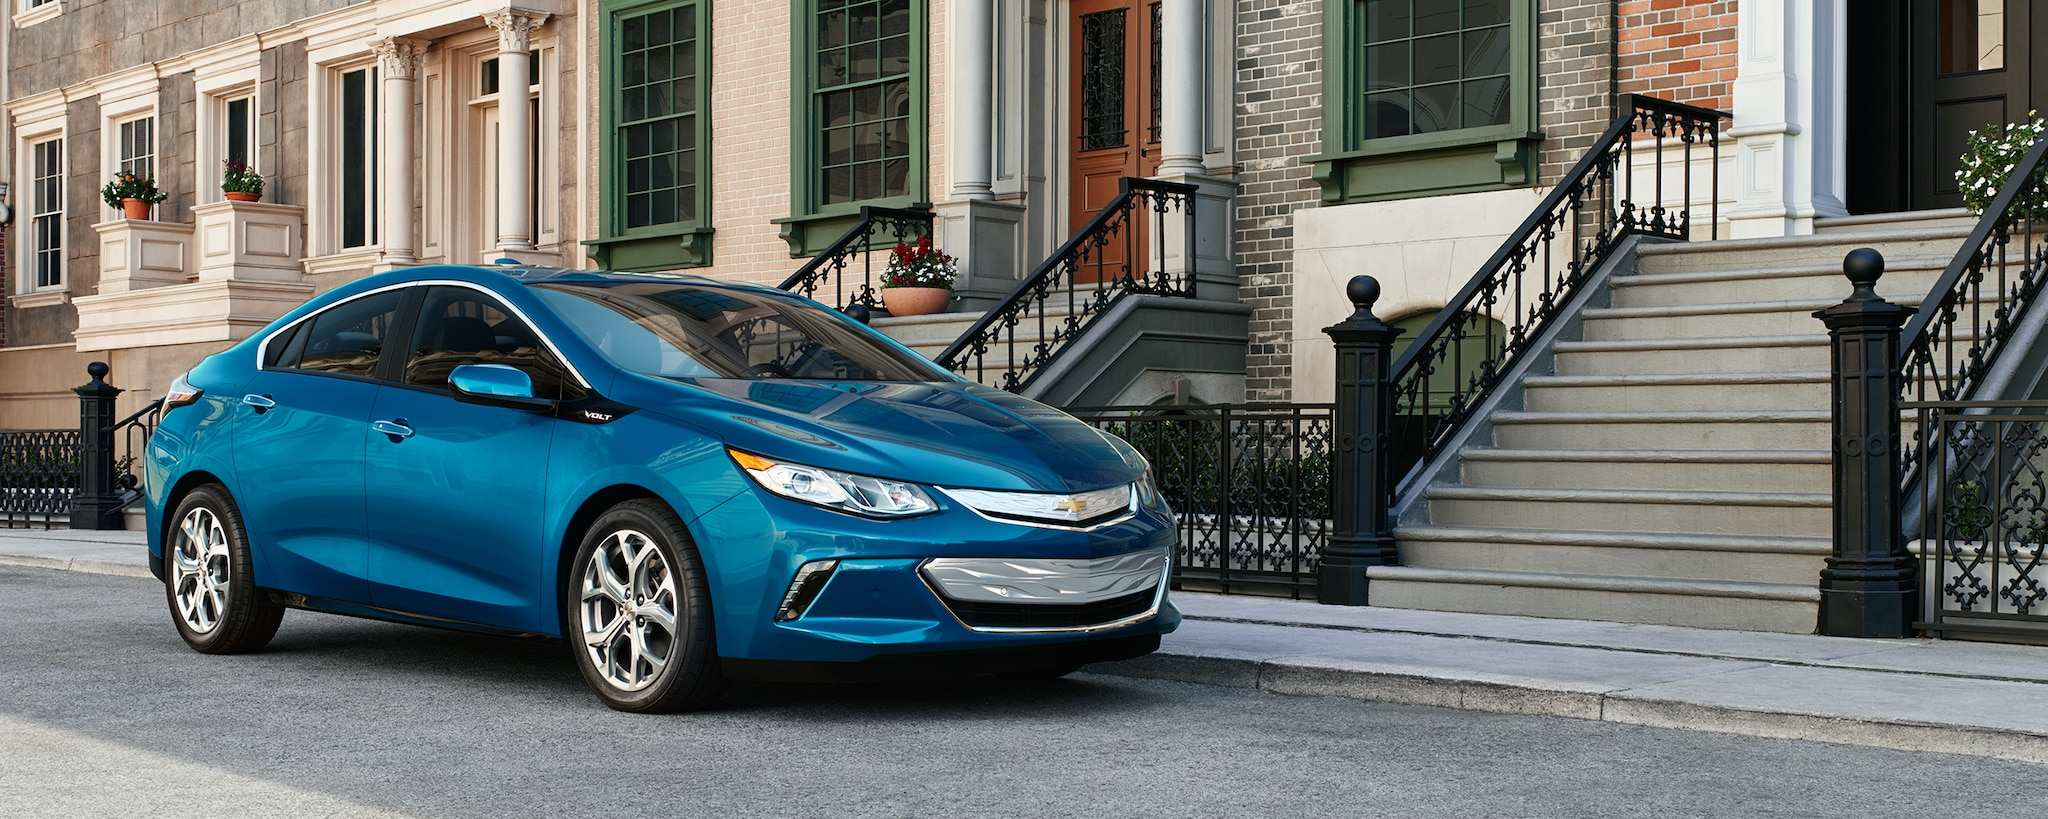 44 Great 2019 Chevrolet Volt Ratings by 2019 Chevrolet Volt